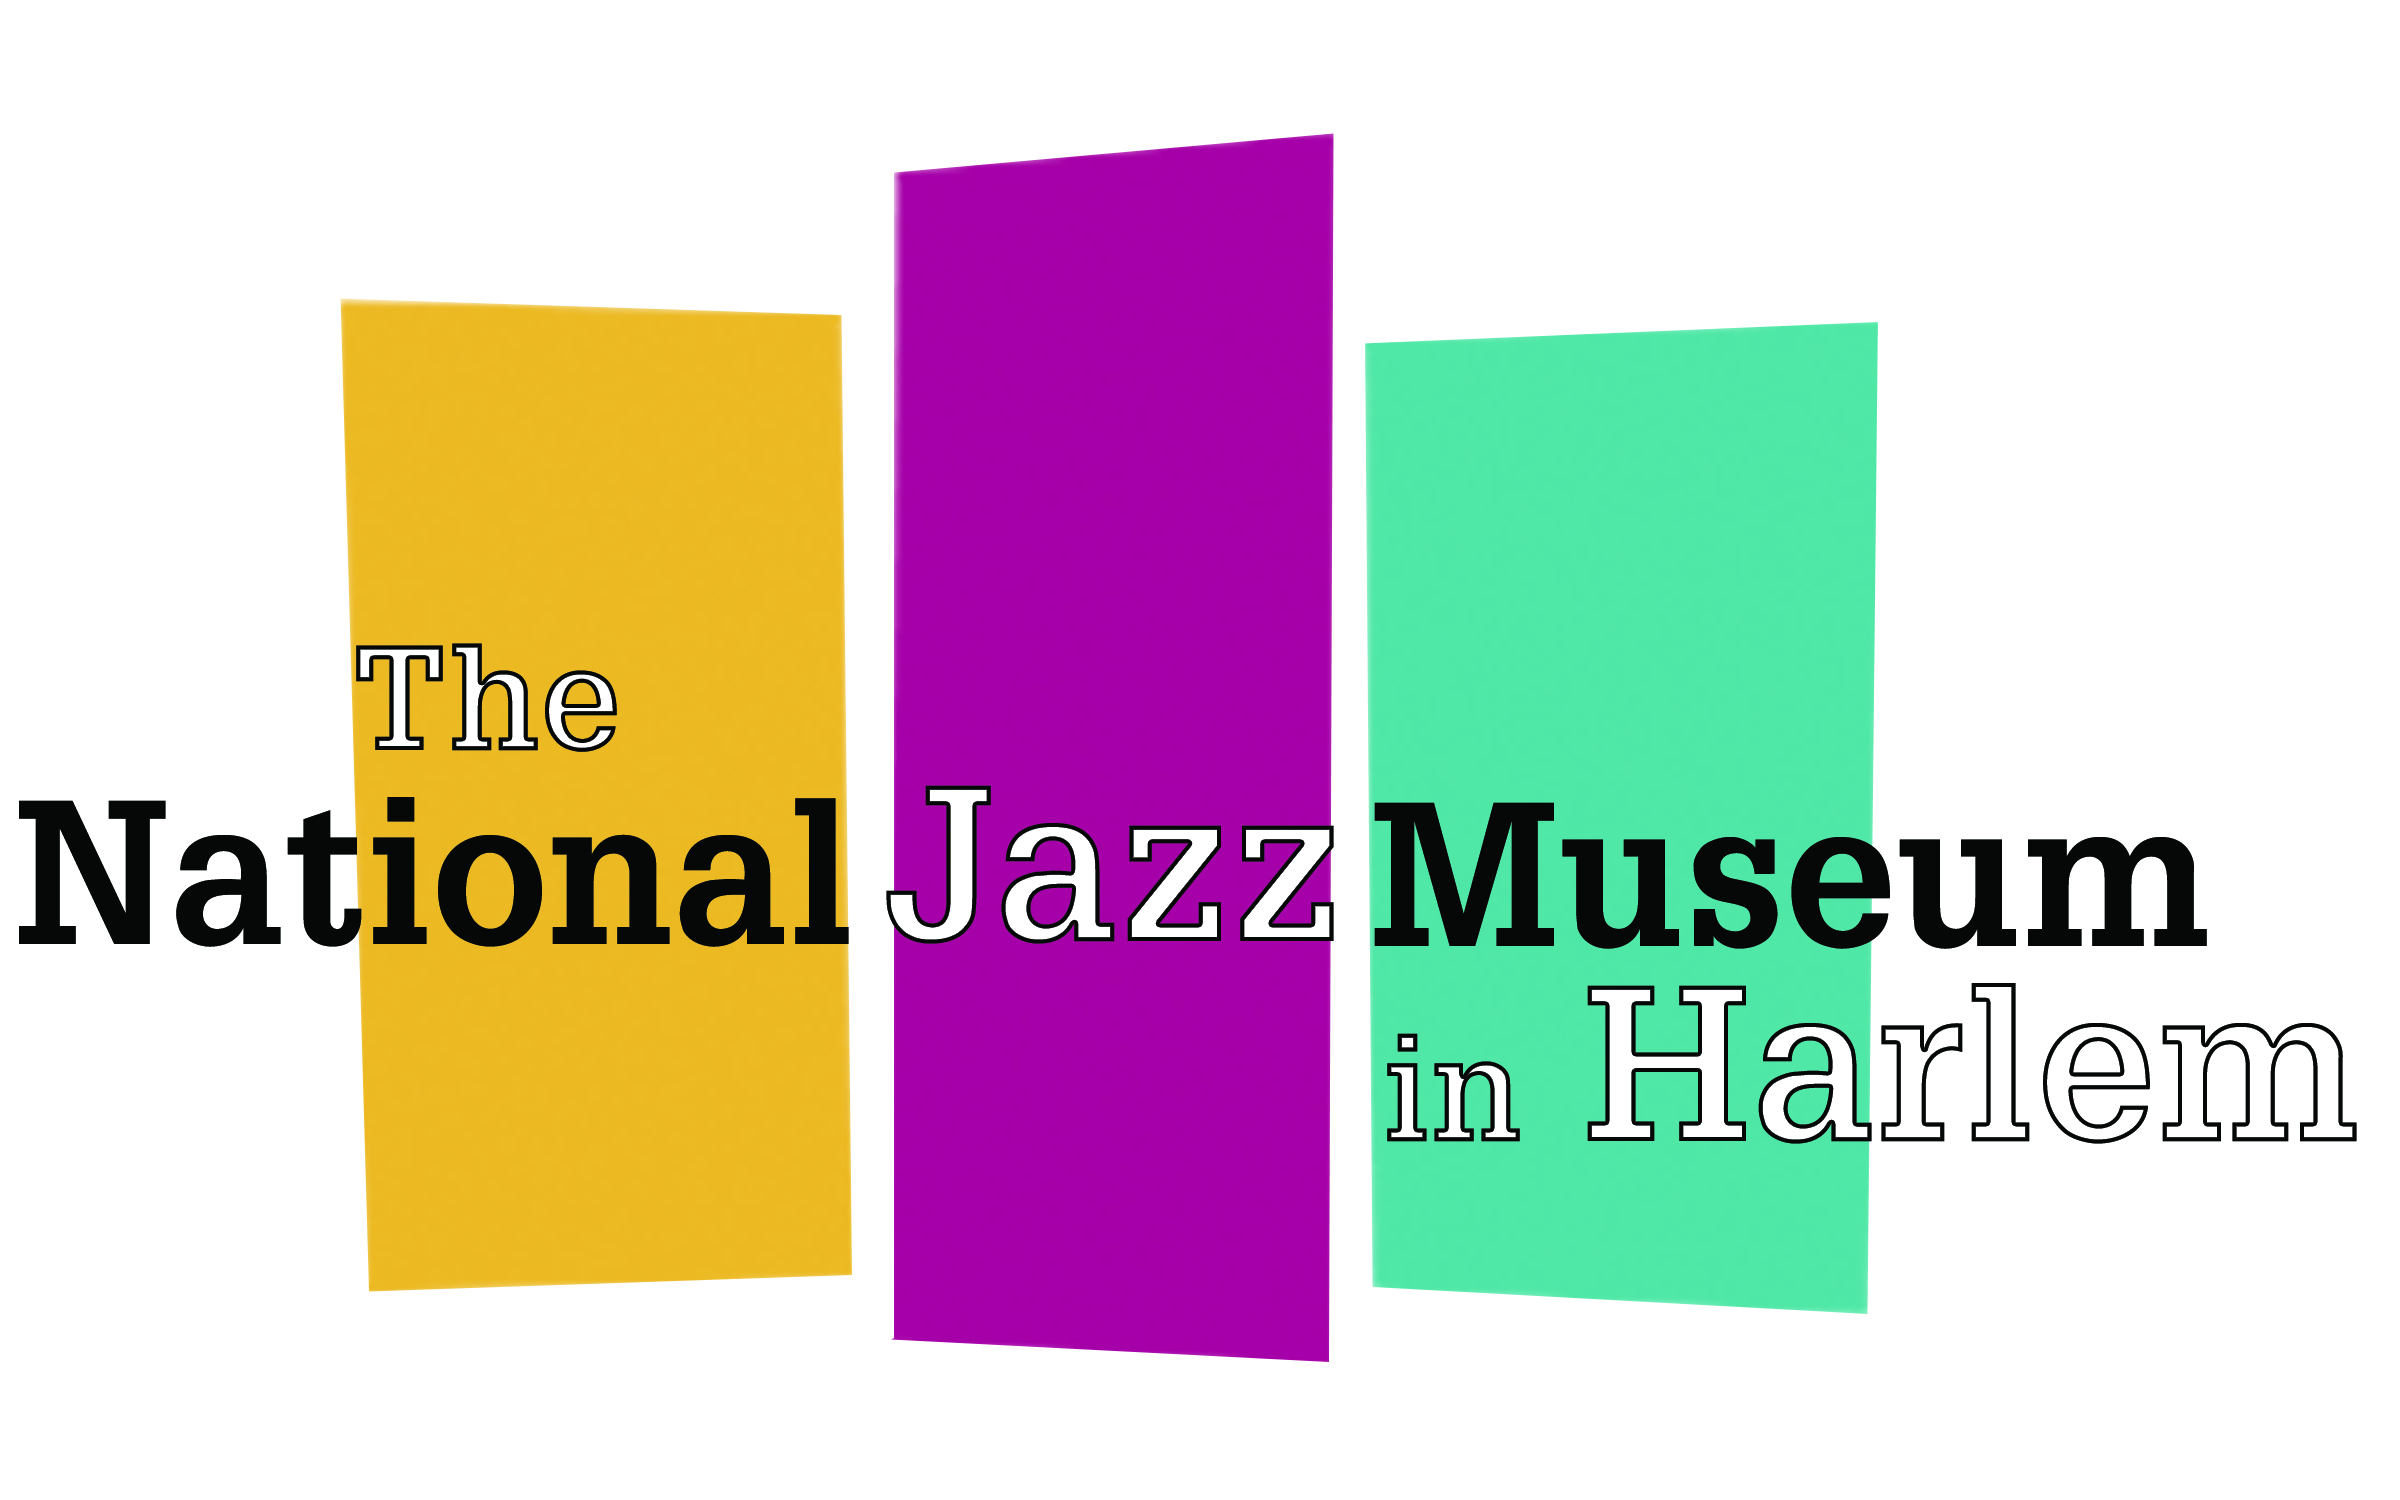 National Jazz Museum in Harlem